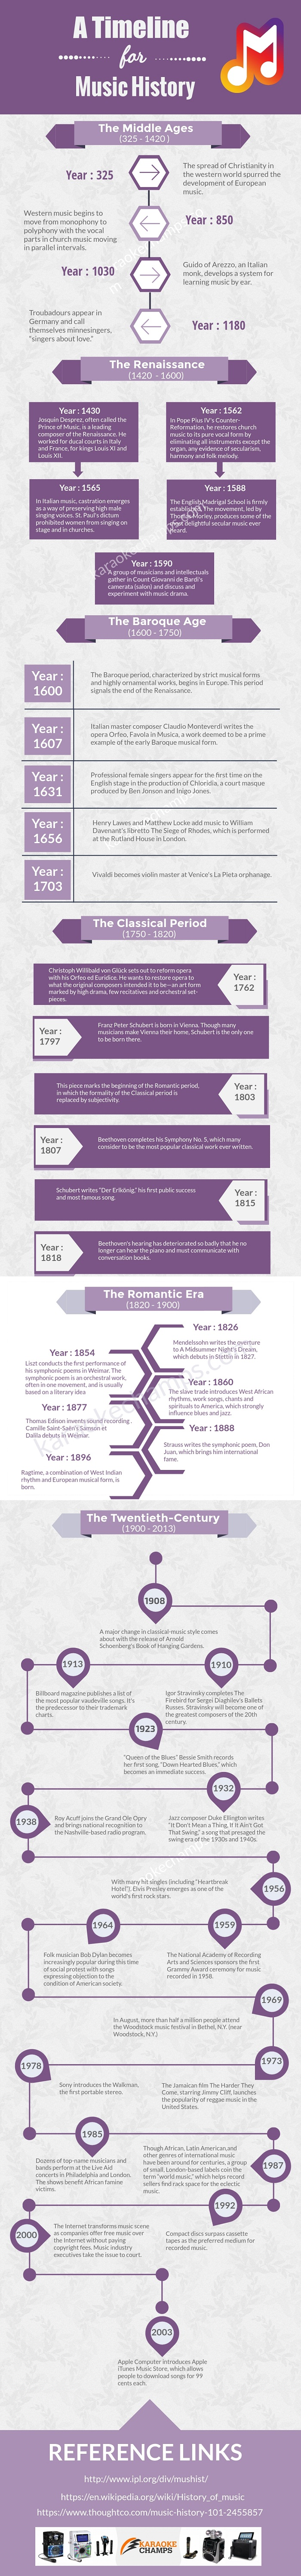 History of Music Infographic